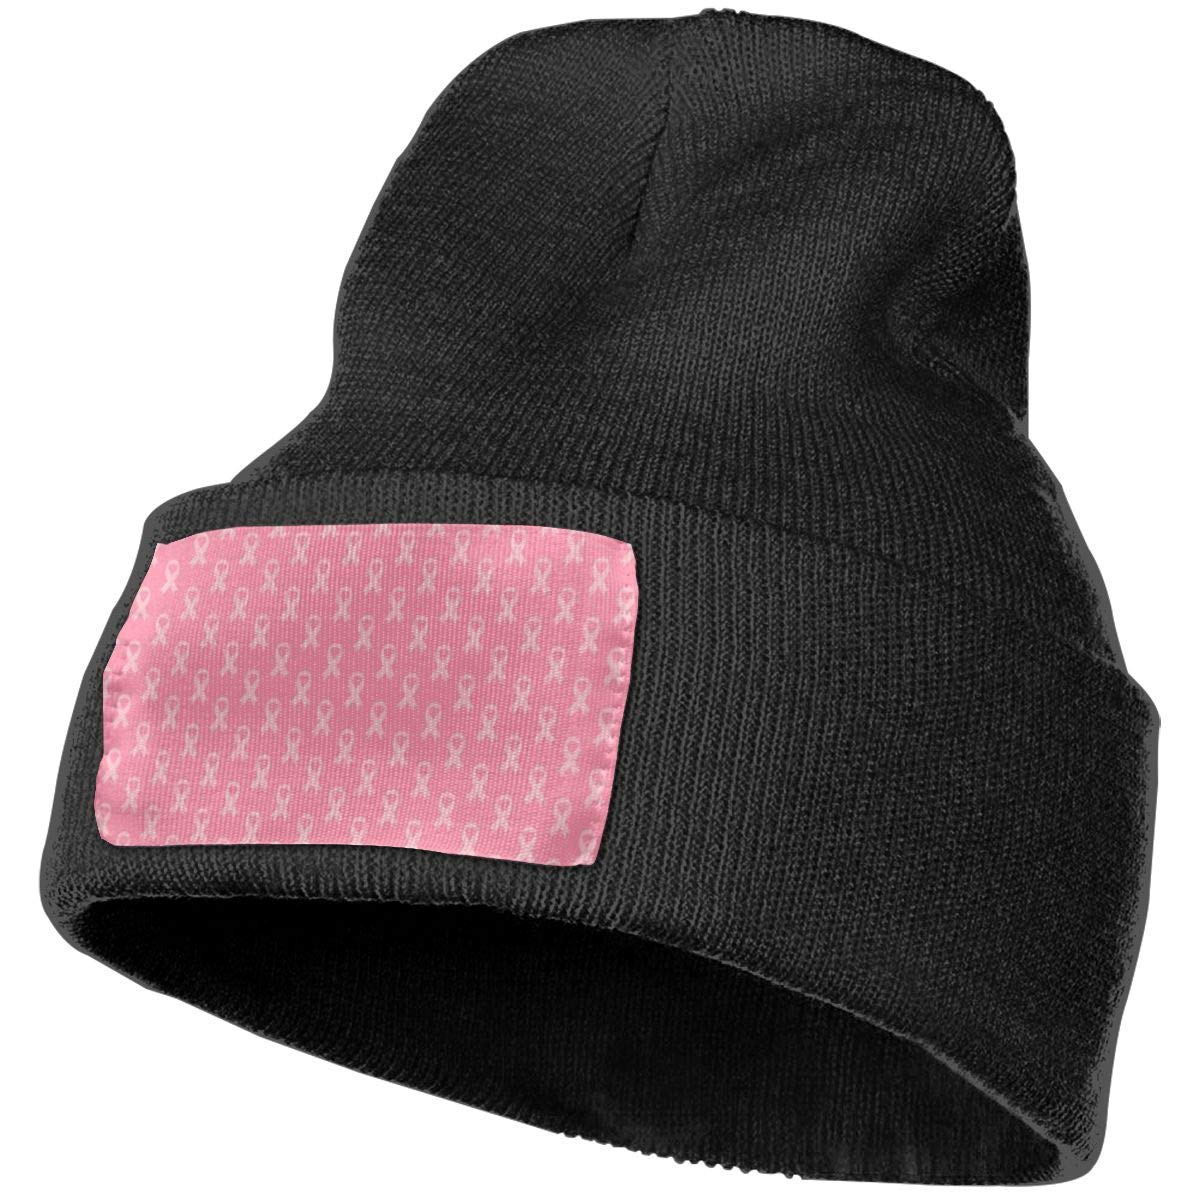 Ruin Pink Ribbon Brest Cancer Fashion Knitting Hat for Men Women 100/% Acrylic Acid Mas Beanie Hat